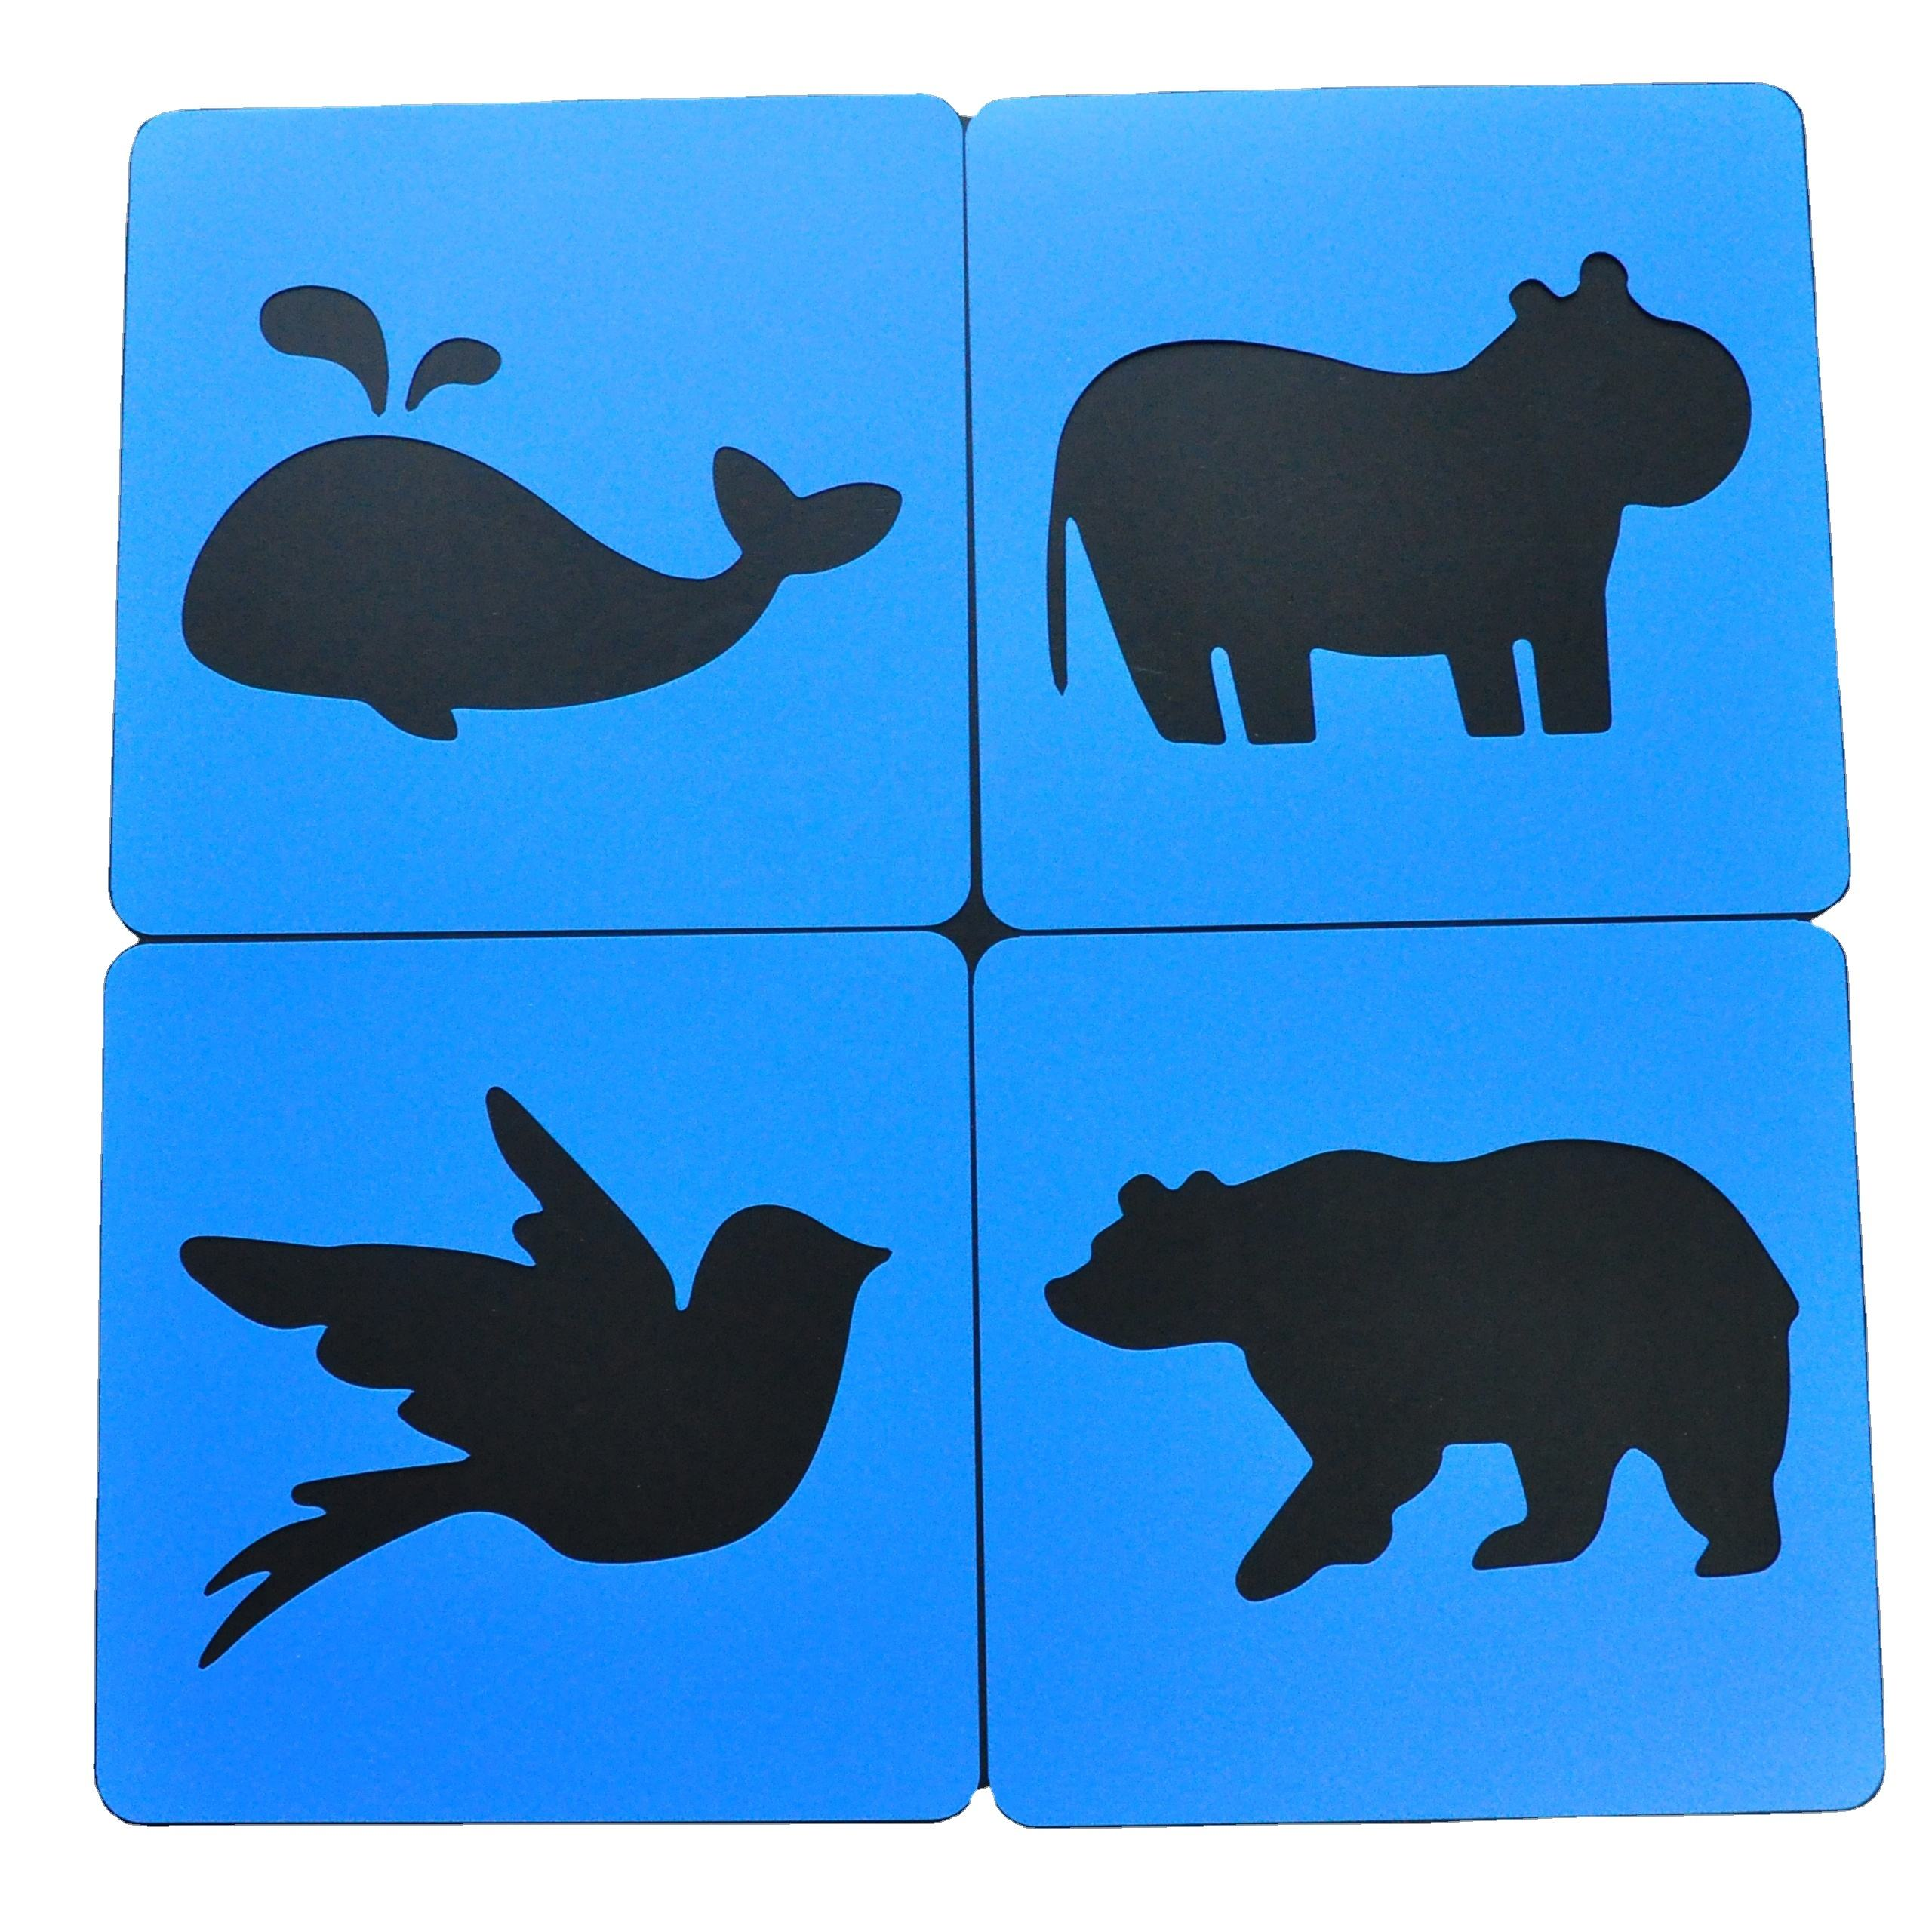 20x20 cm reusable plastic animal shape painting stencils for DIY Kids Art Craft Project